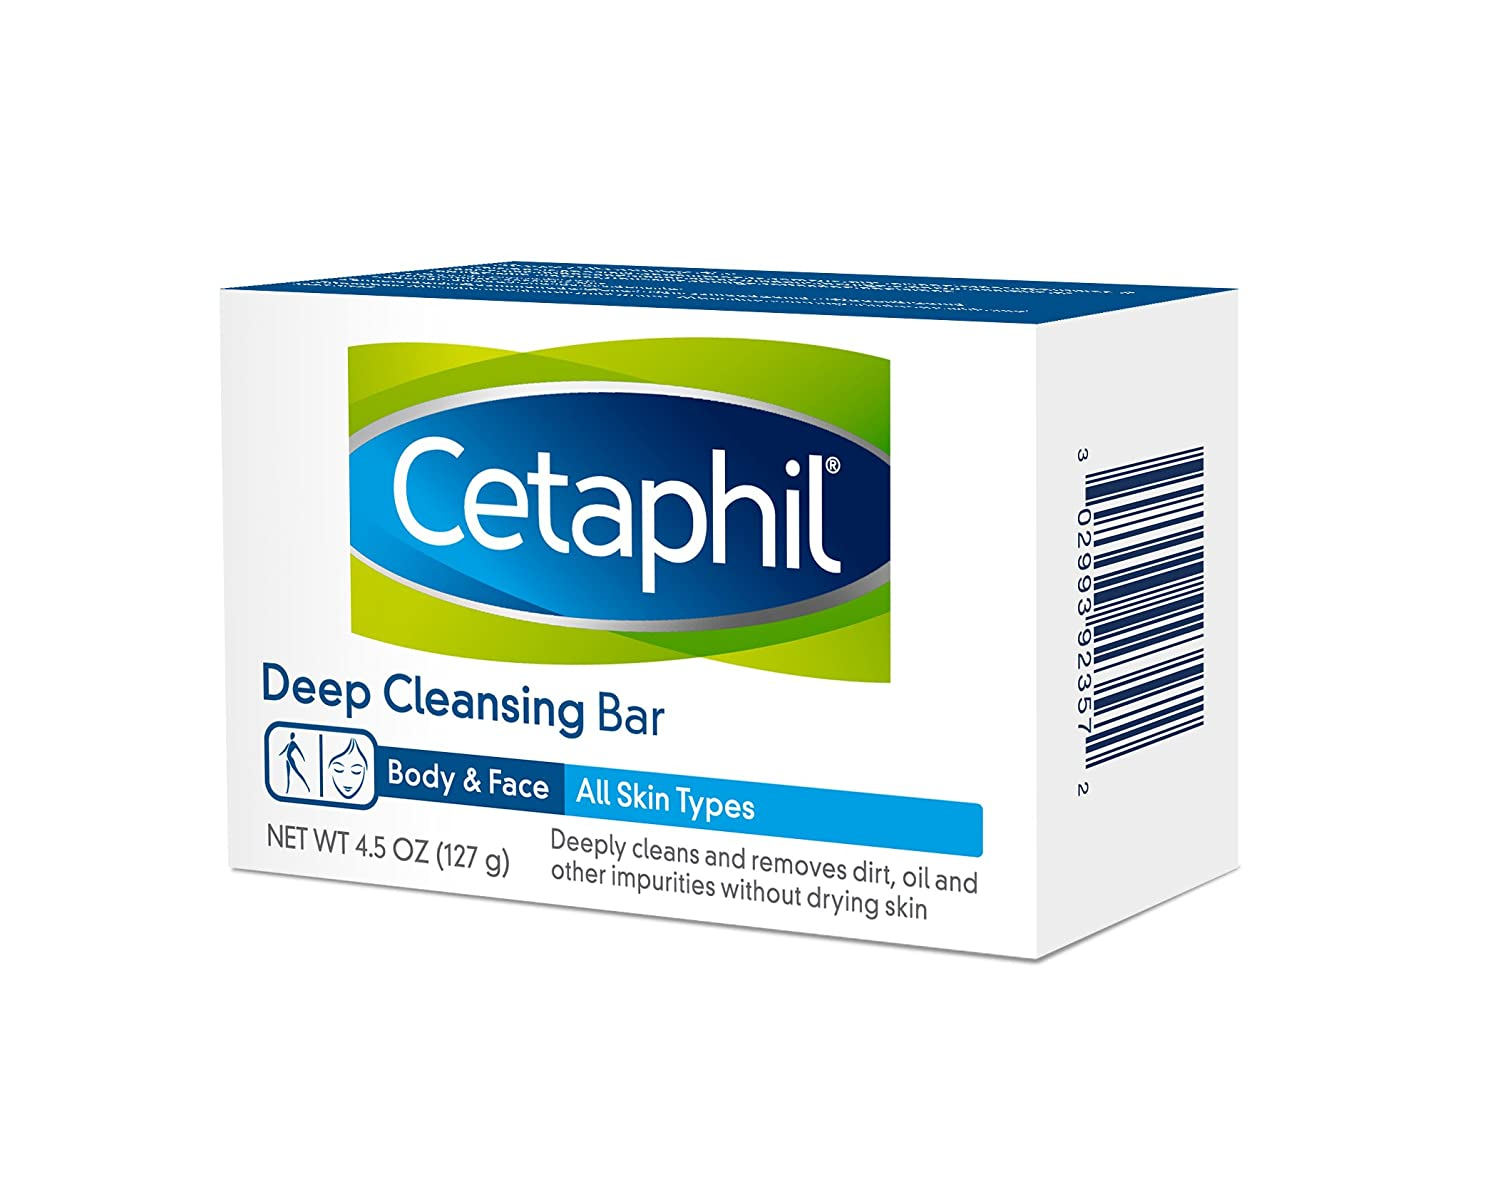 Cetaphil Deep Cleansing Face & Body Bar for All Skin Types (pack of 6) Galderma Laboratories Inc B074ZH8Y6D